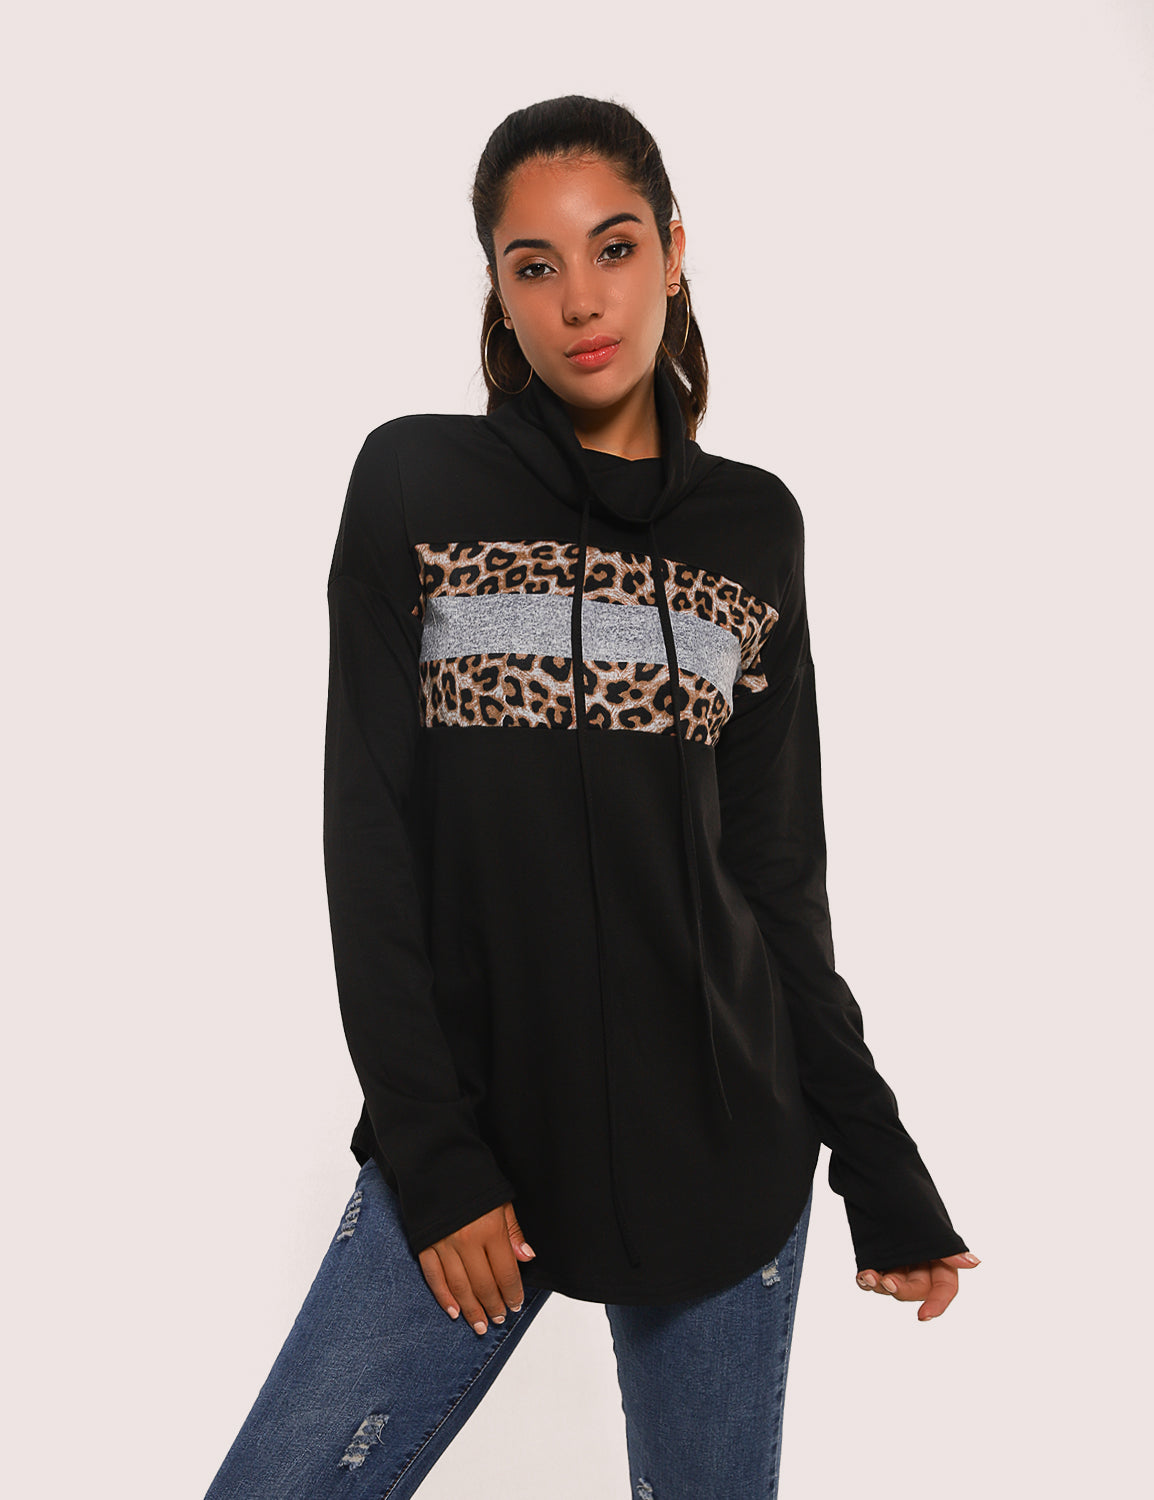 Blooming Jelly_Wild Leopard Patchwork Drawstring Sweatshirt_Leopard Patchwork_156265_02_Autumn&Winter Casual Women Outdoor_Tops_Sweatshirt